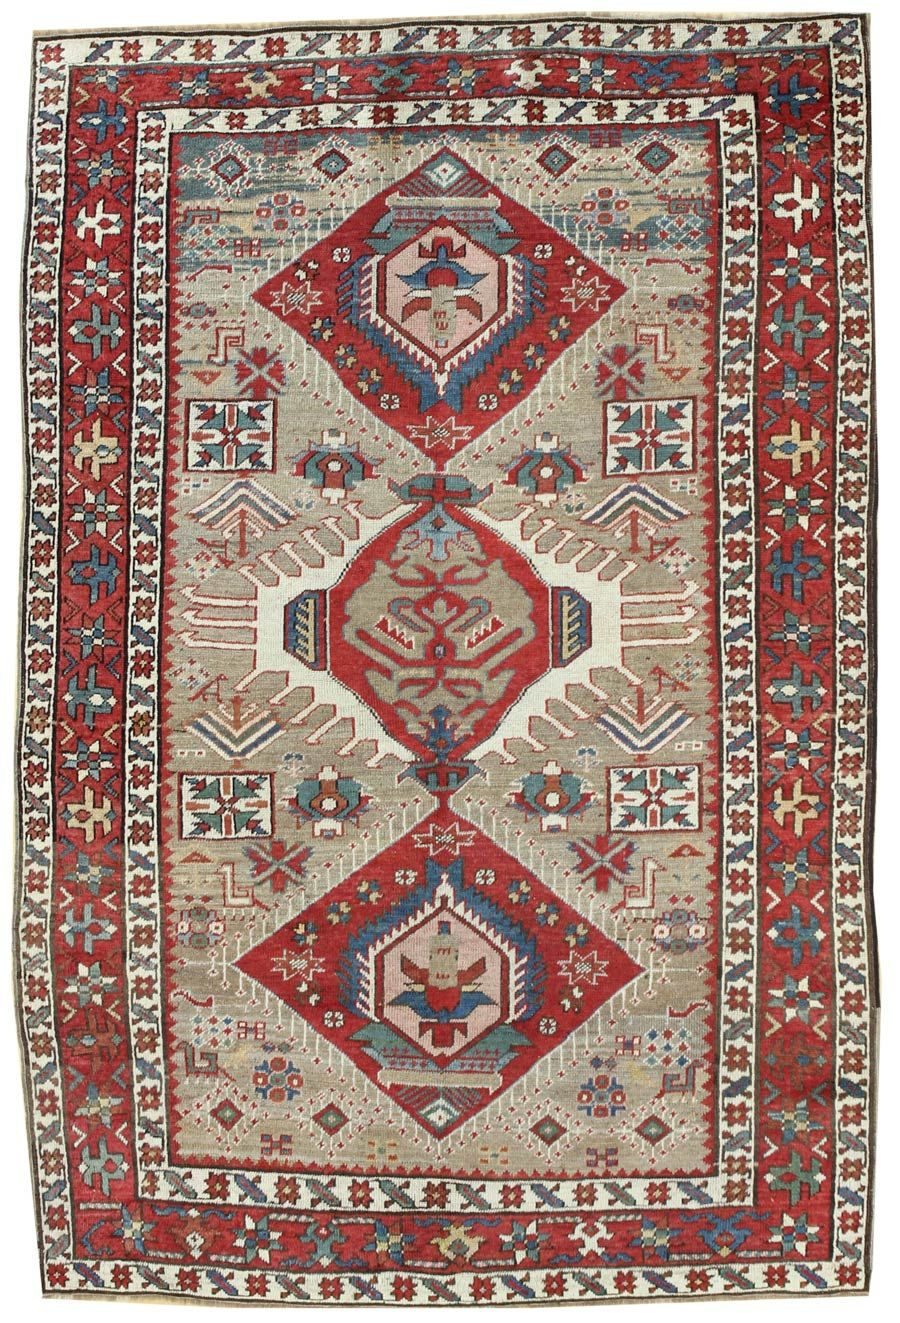 """Antique Karabagh Rug ID: JF5234. Hand-knotted in the Caucasus.  Circa 1910.  4'5"""" x 6'3"""".  $5,800 retail/ $4,640 net.  Rug is in the Boston showroom."""